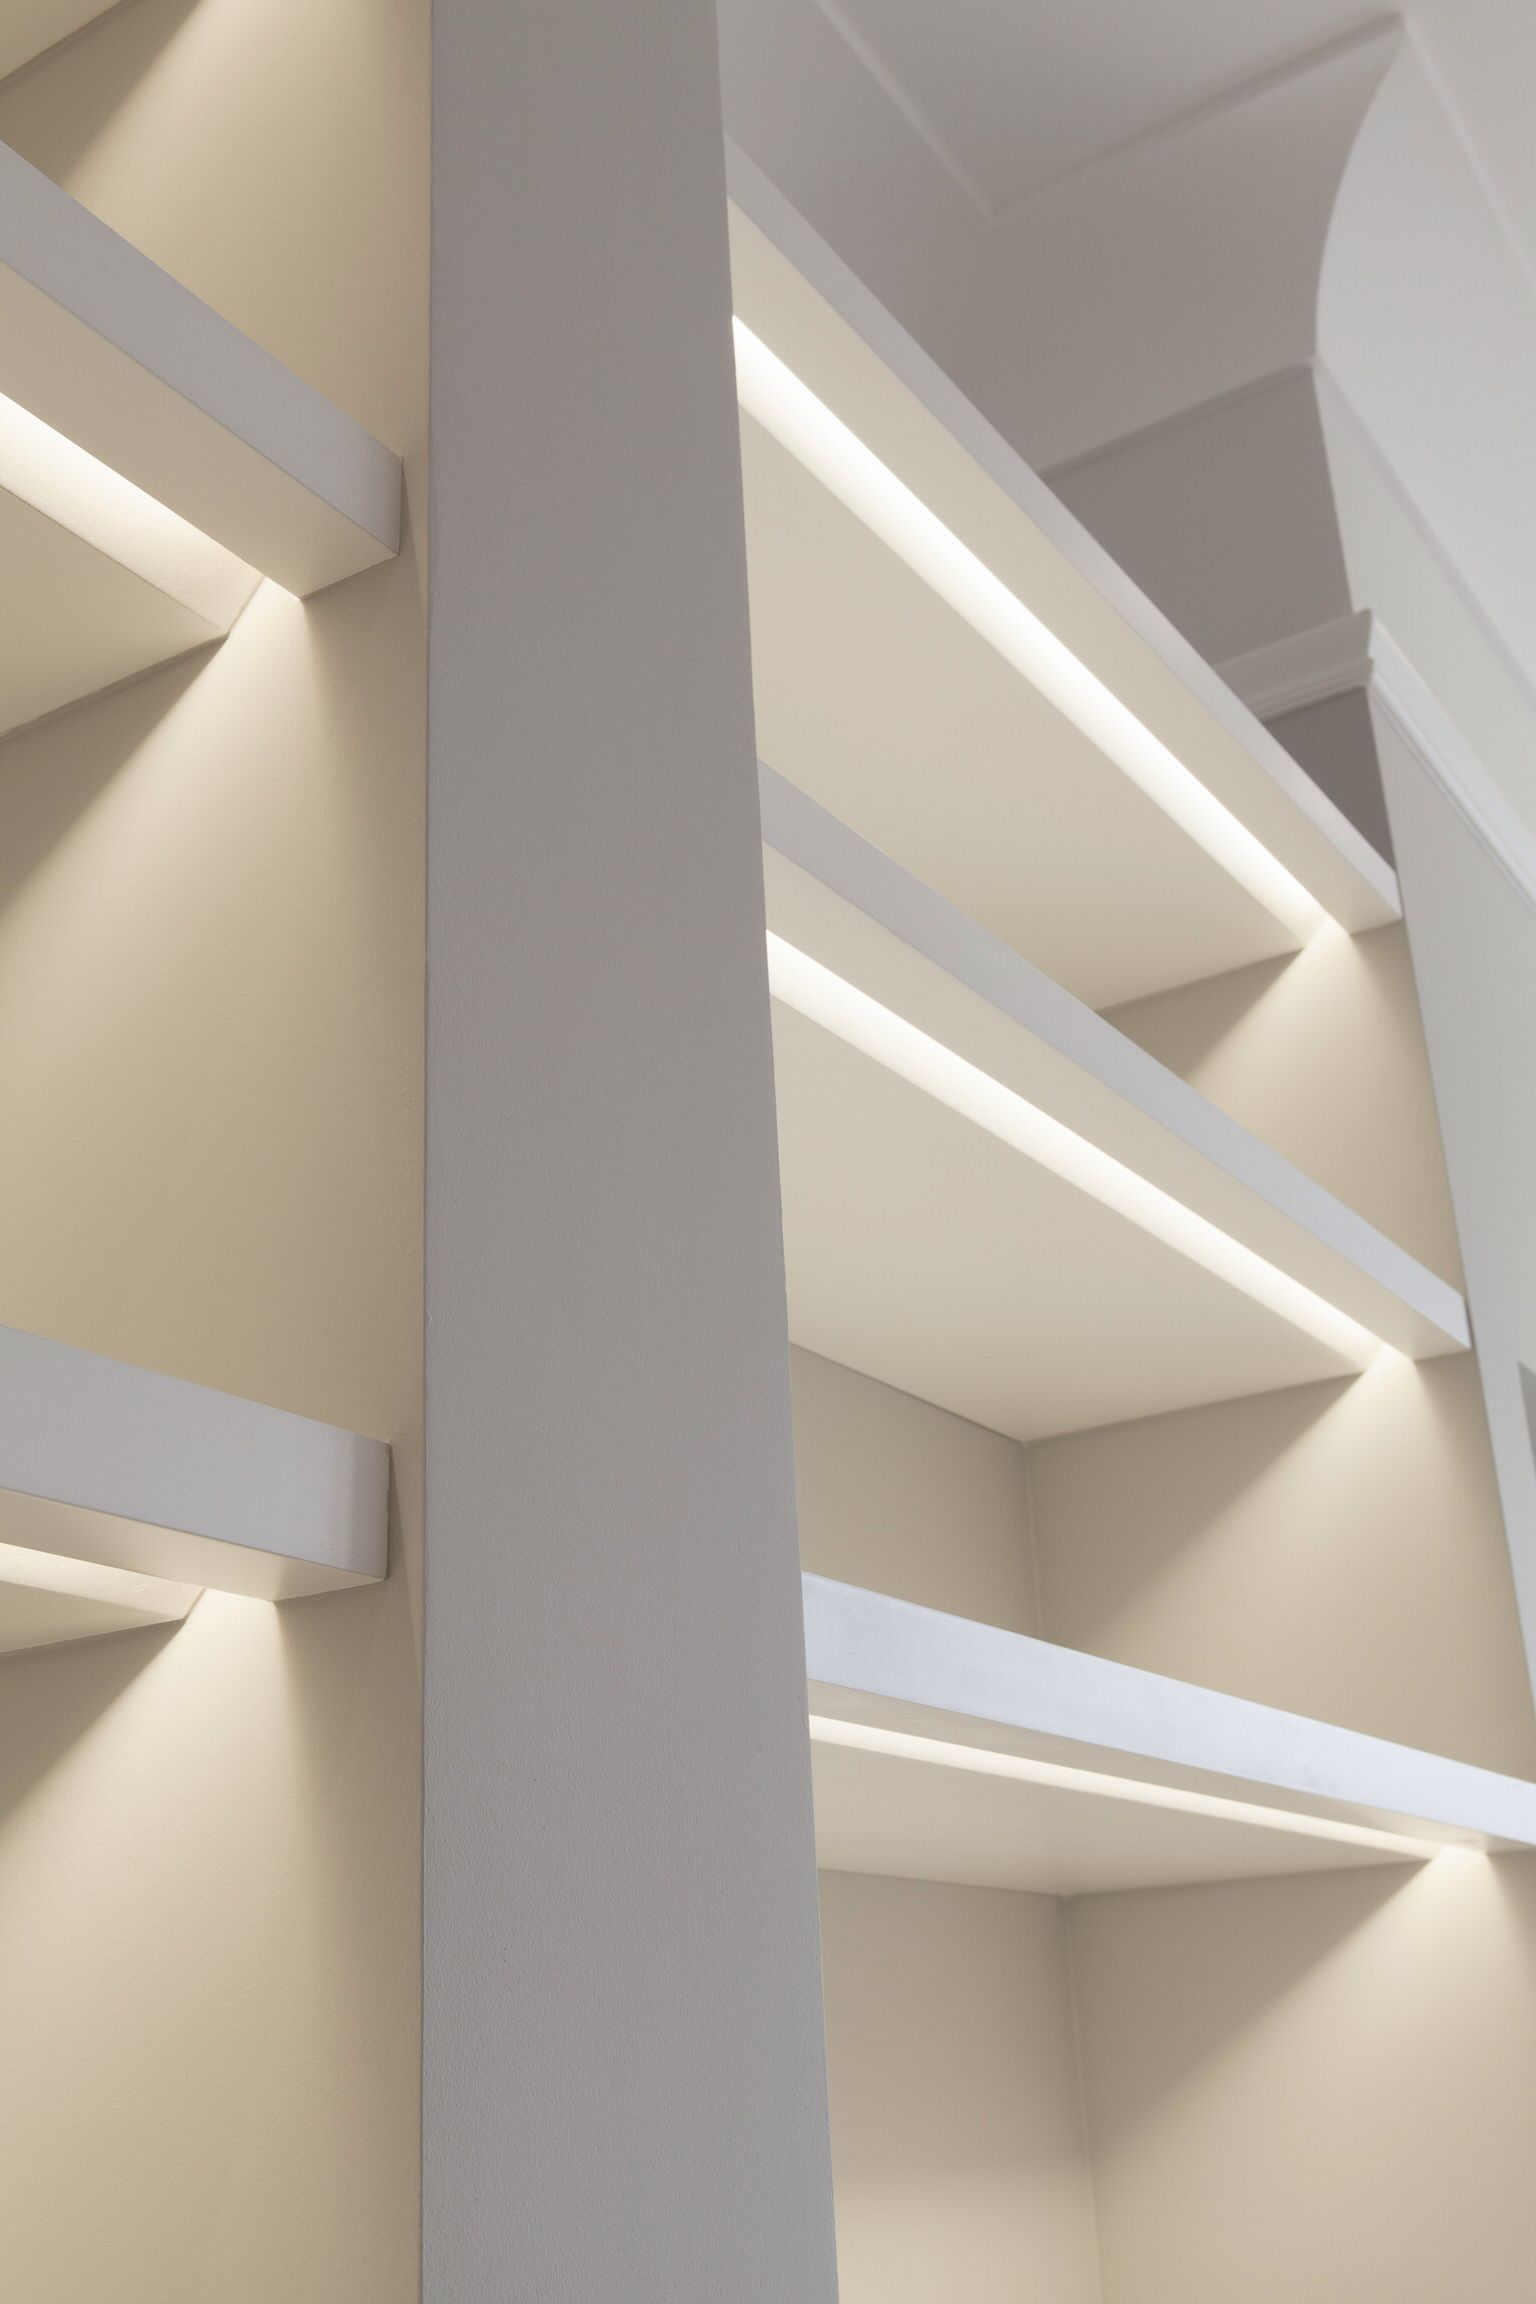 Shelves Lit With Recessed Lights Note The Bevel To Allow Light To